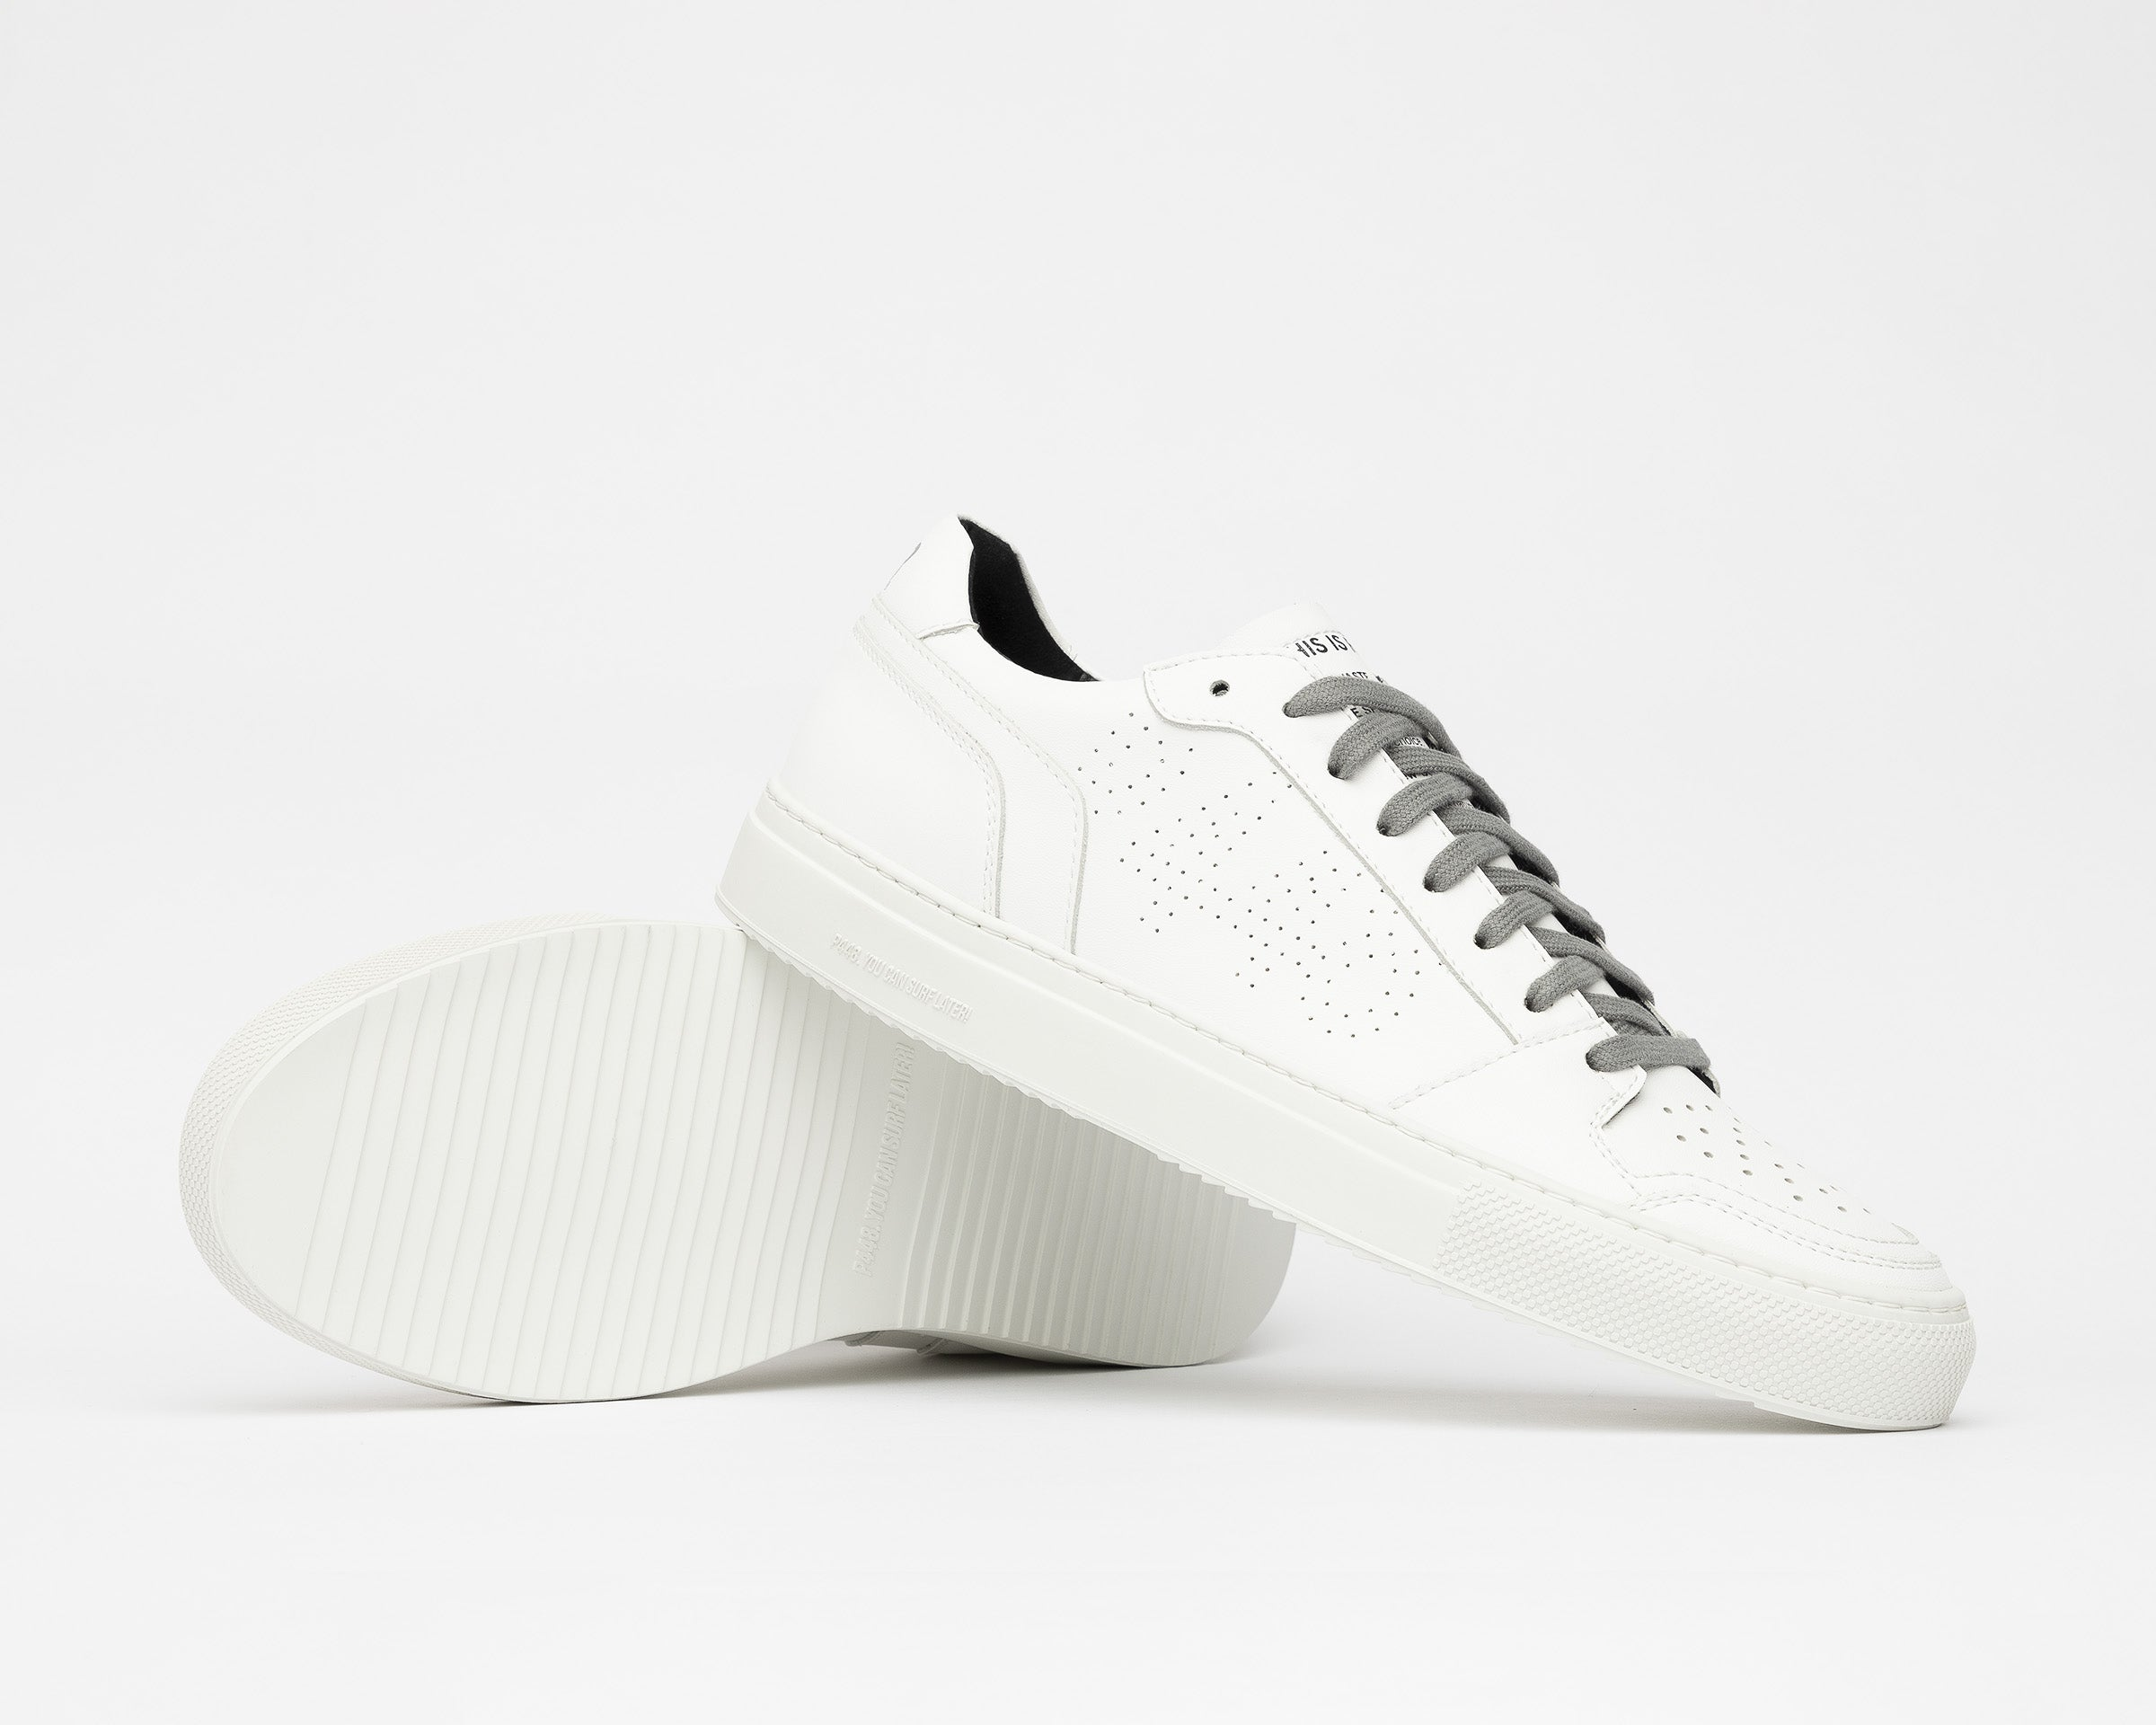 Zac Low-Top Sneaker in WhiteR Recycled Leather - Detail 1